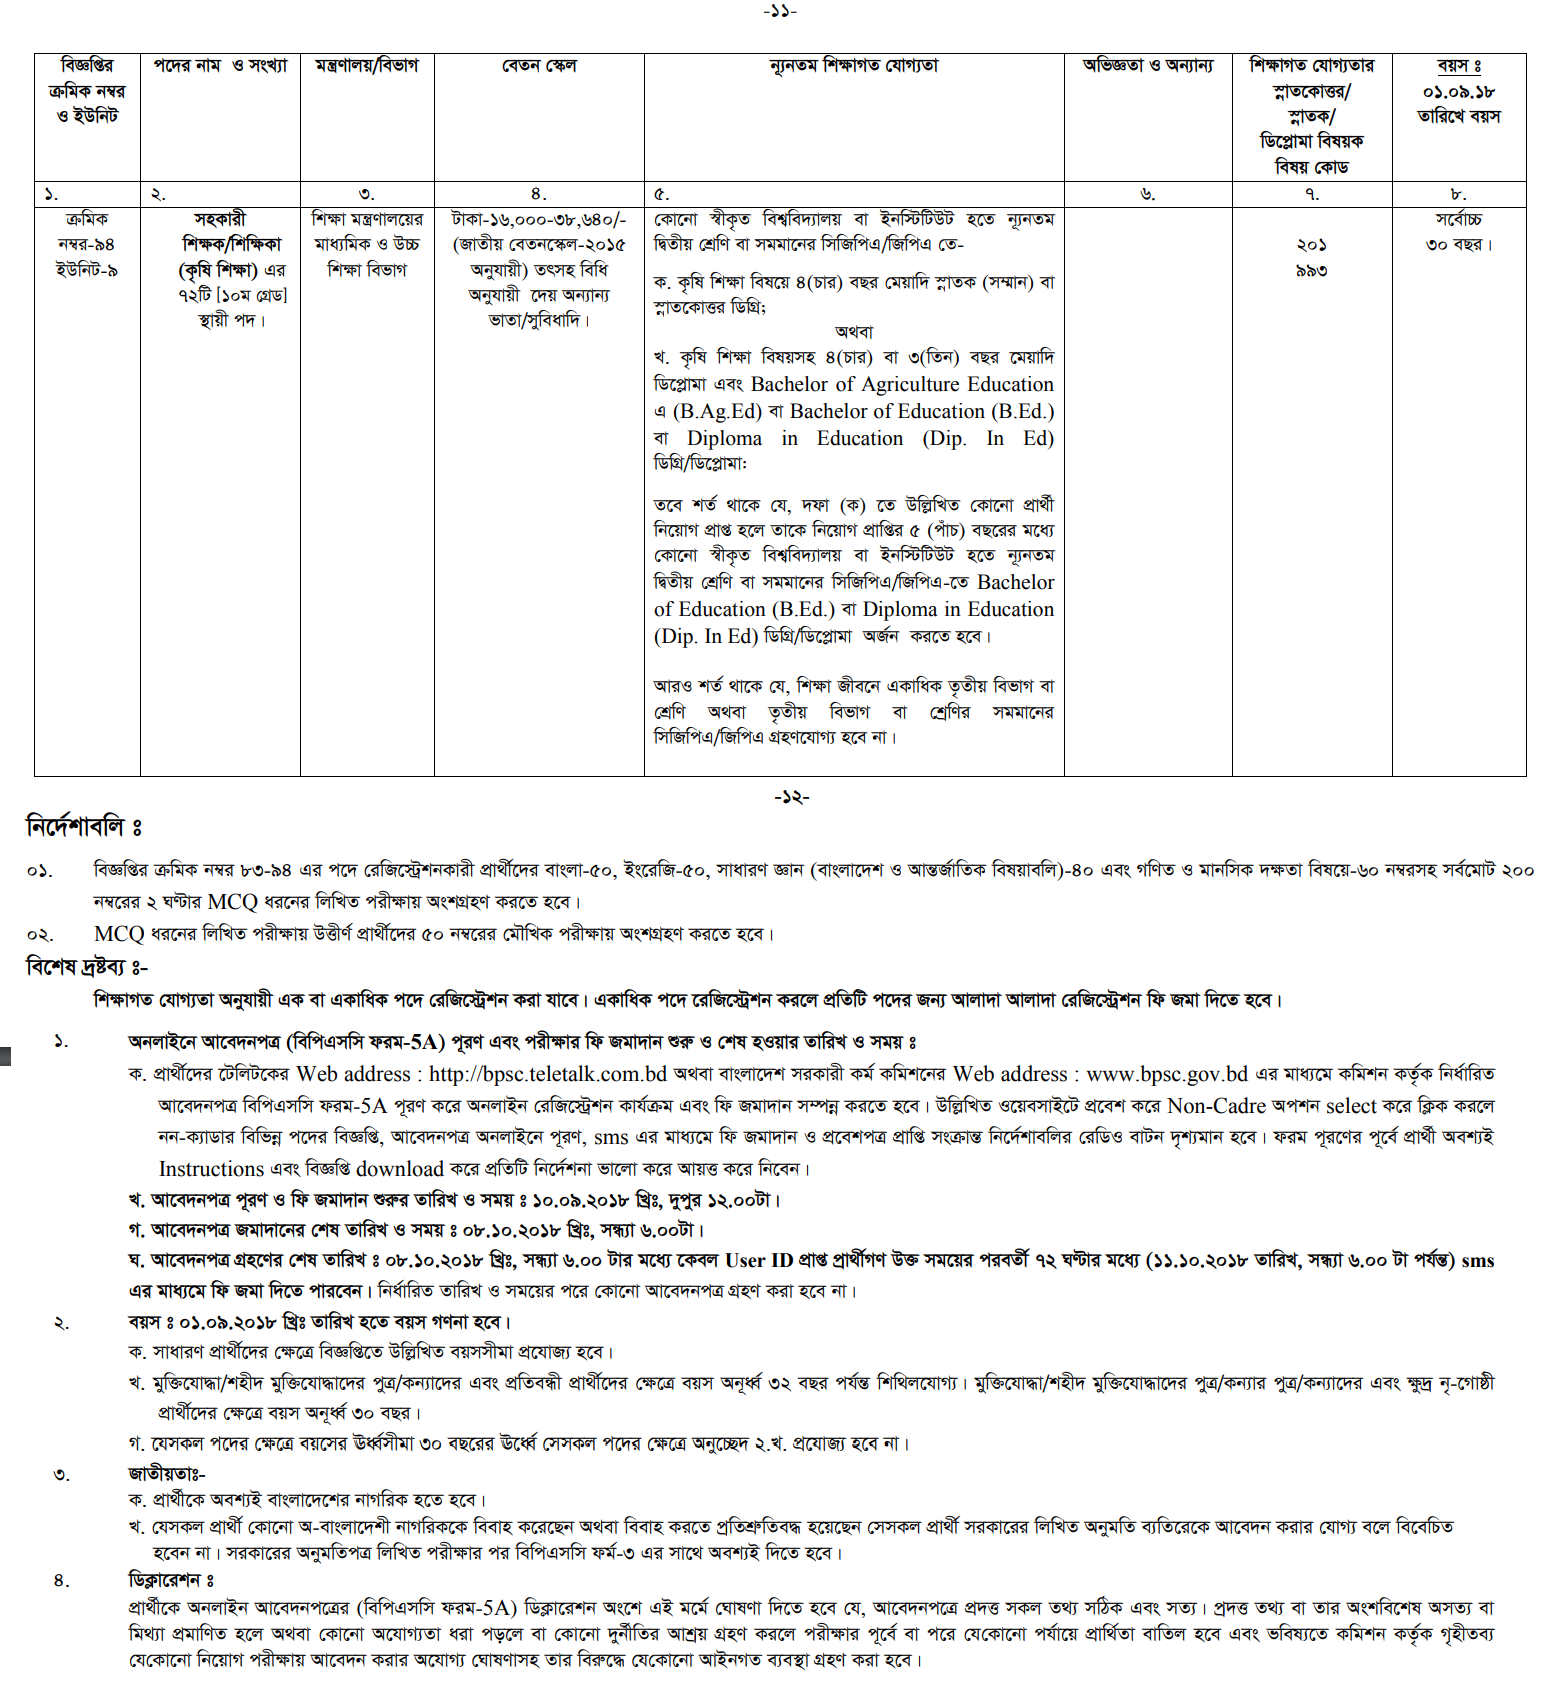 Bangladesh Public Service Commission BPSC Job Apply Online Processing at a Glance